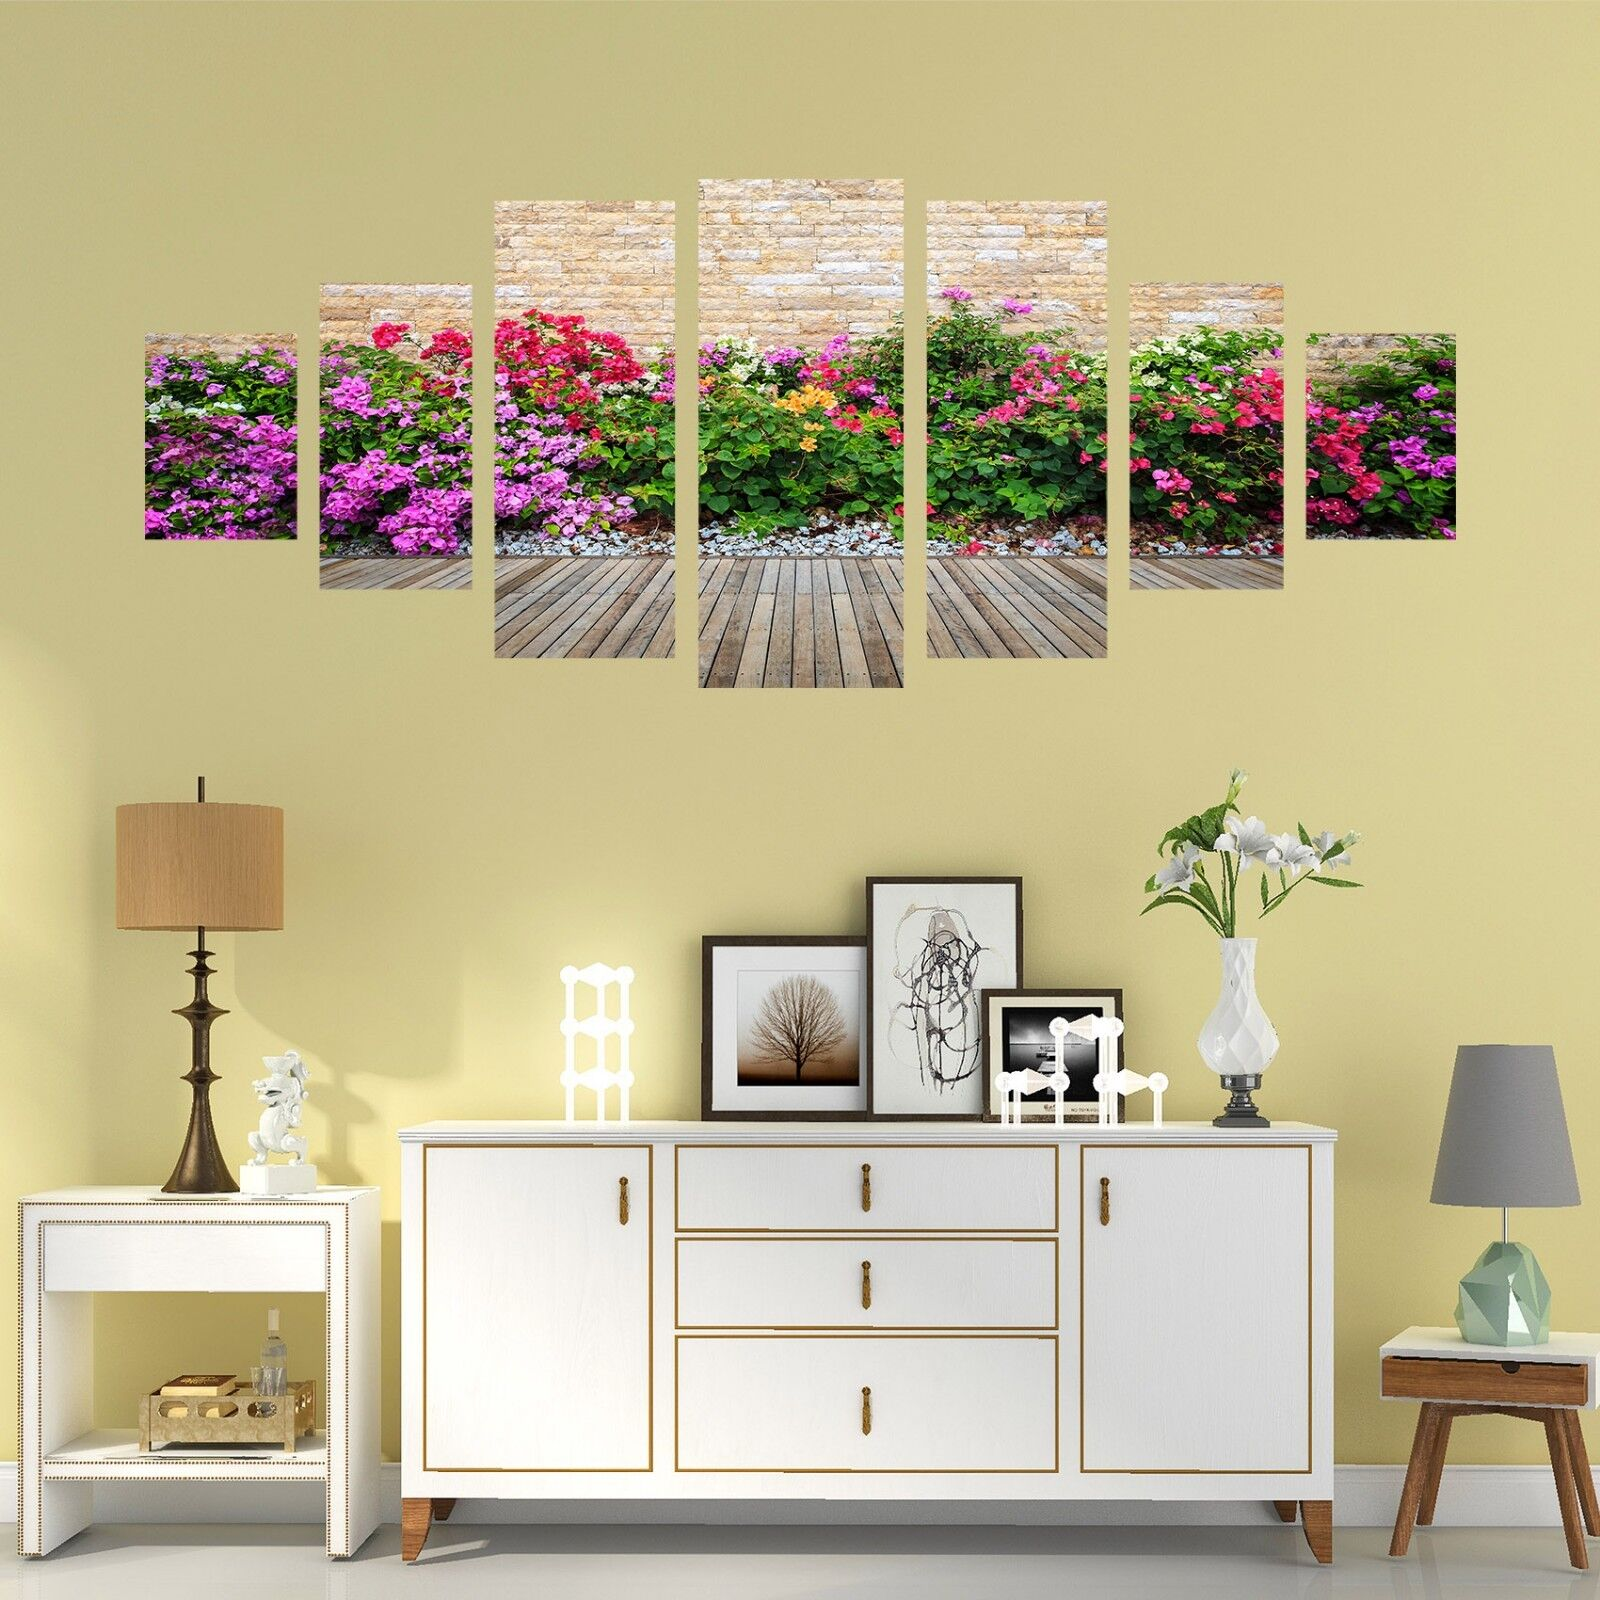 3D color Flowers 6457 Unframed Print Wall Paper Decal Wall Deco Indoor AJ Wall